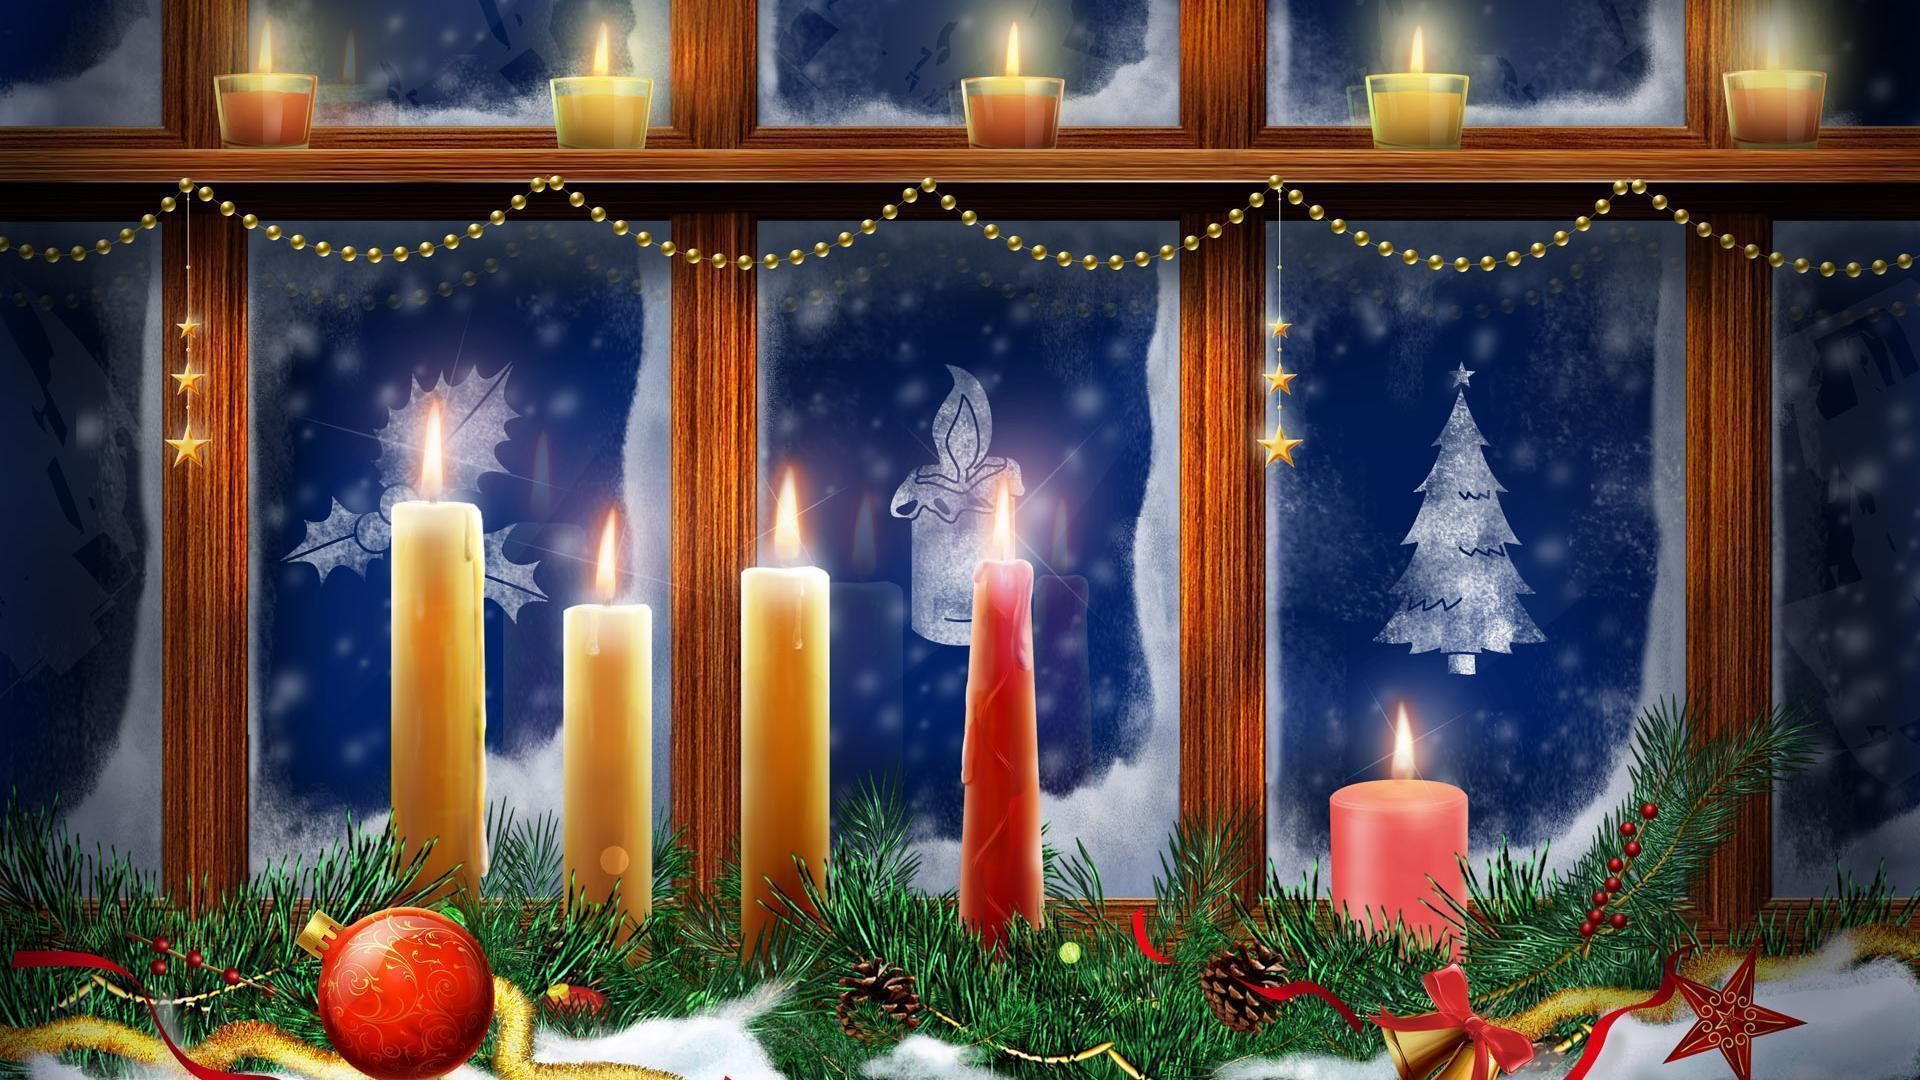 Merry Christmas Wallpapers 1920X1080 wallpapers